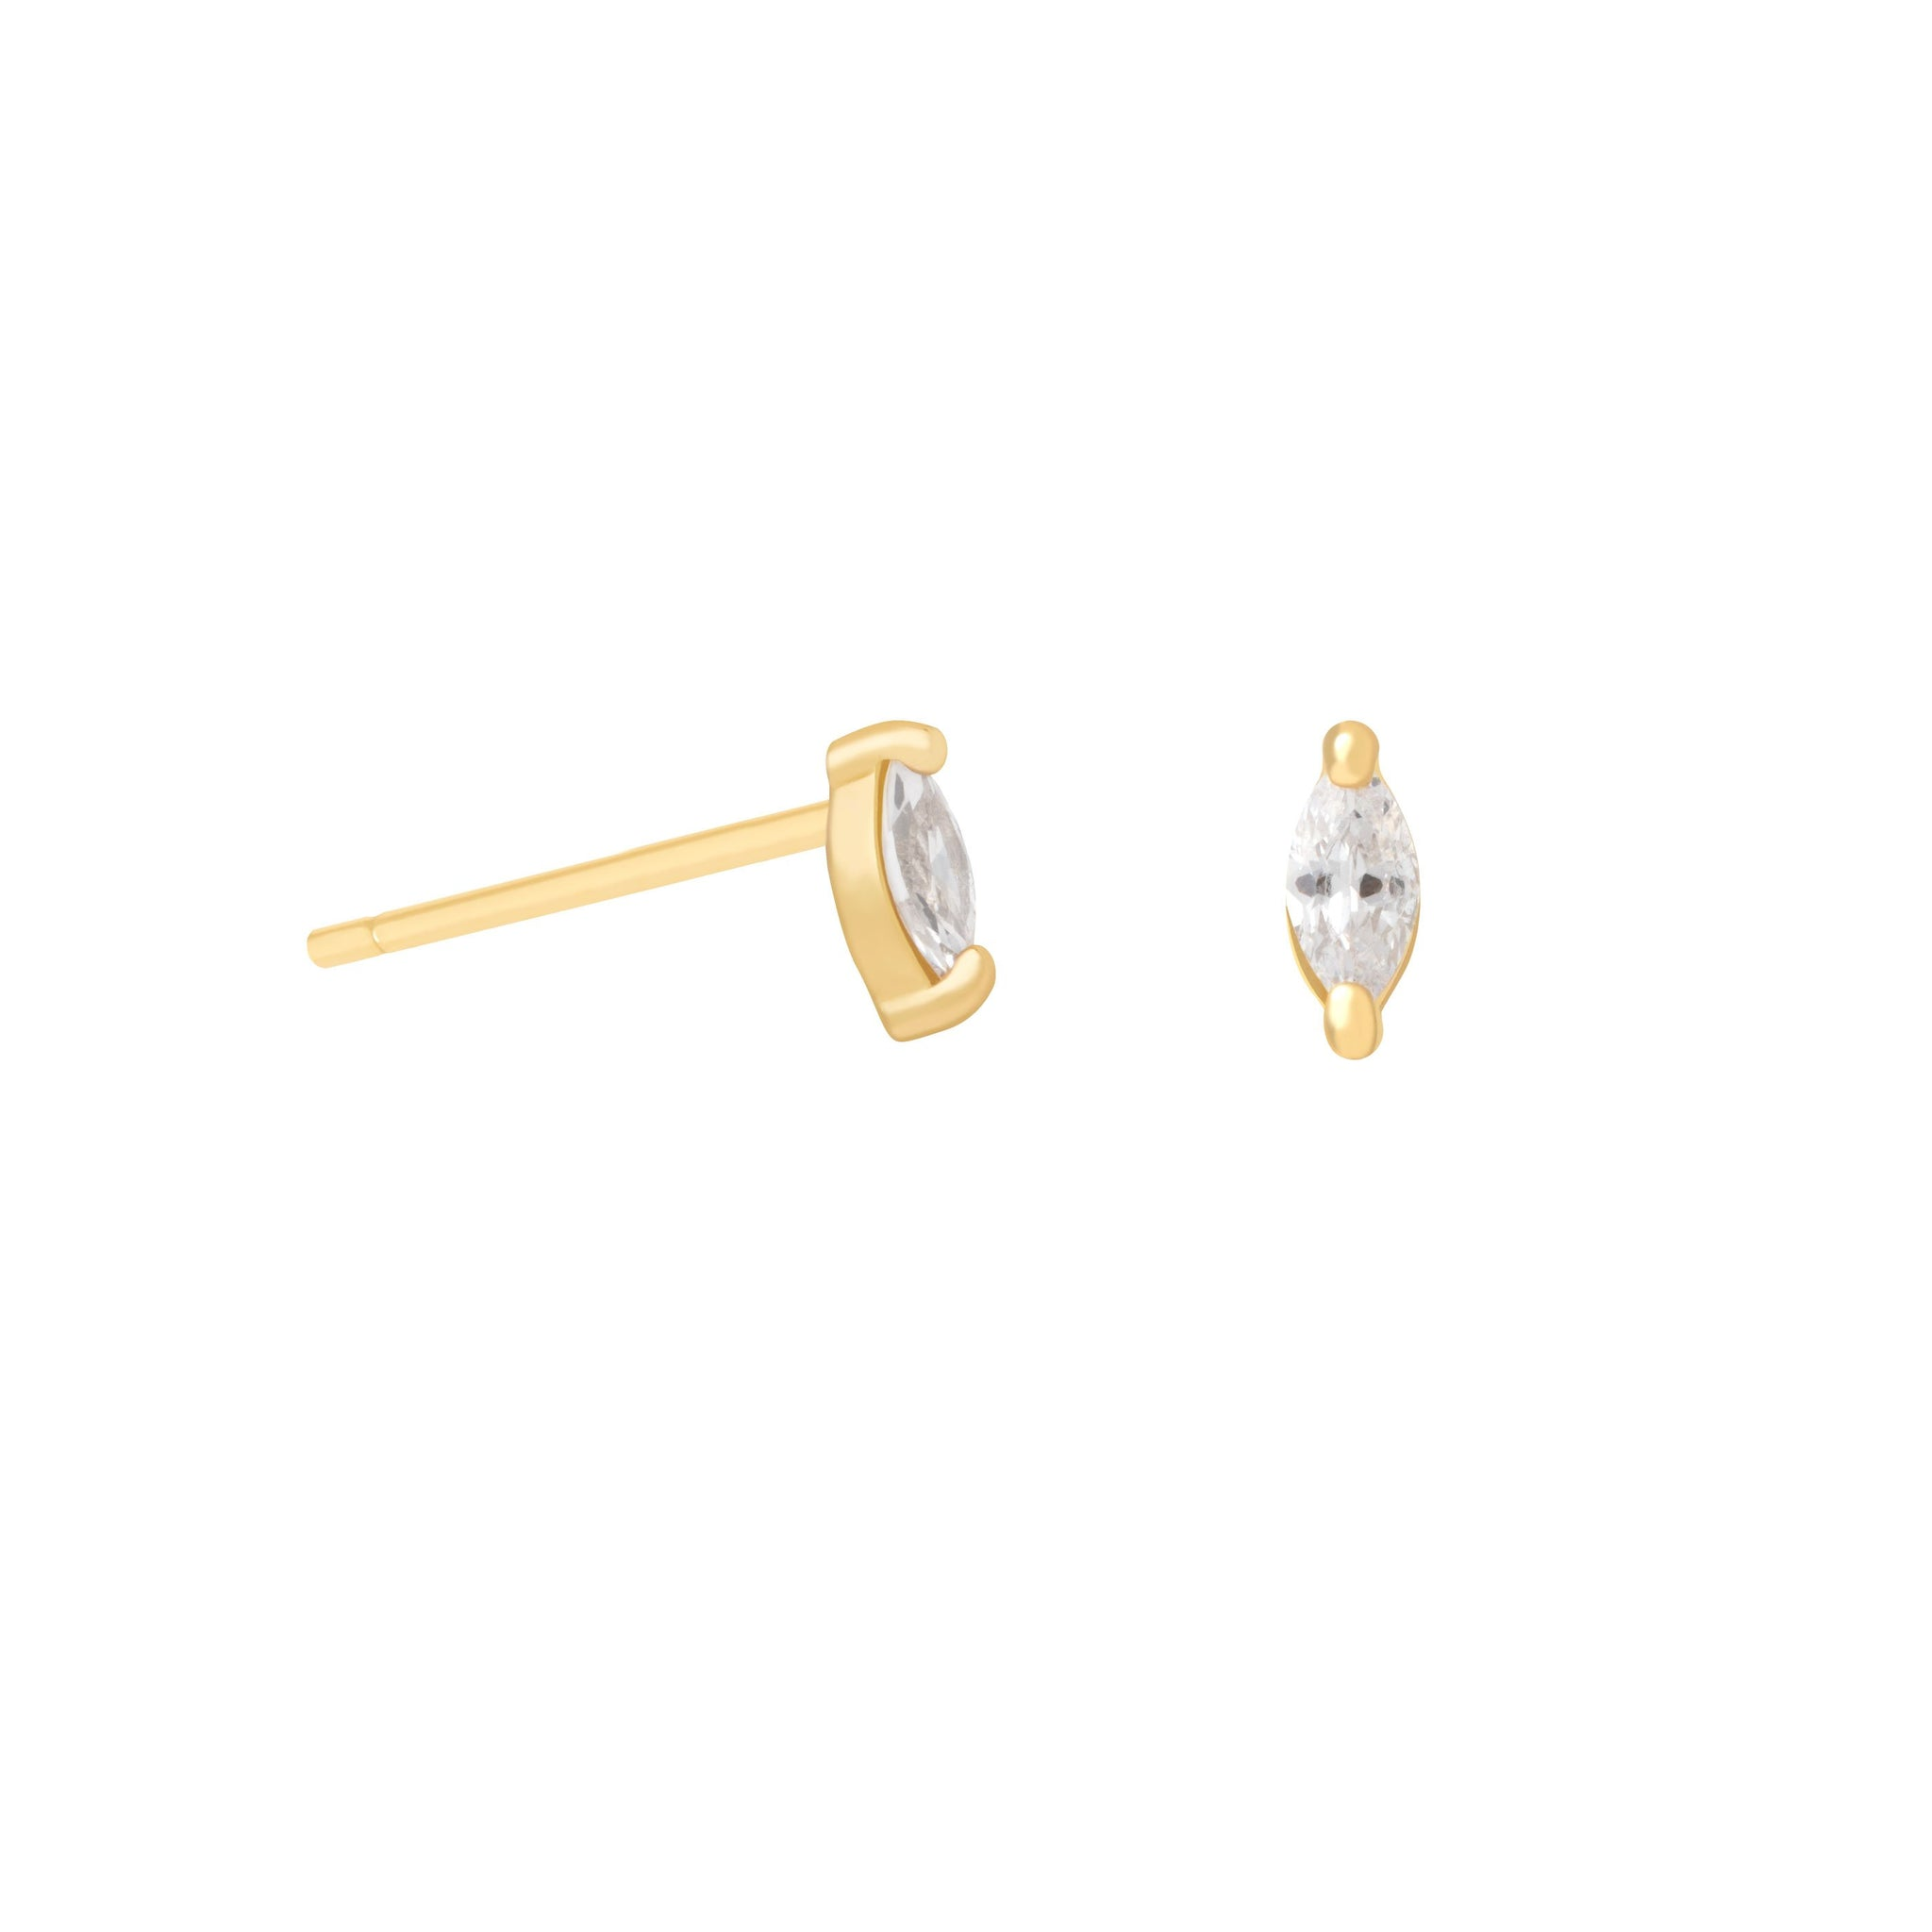 Navette Stud Earrings in Gold